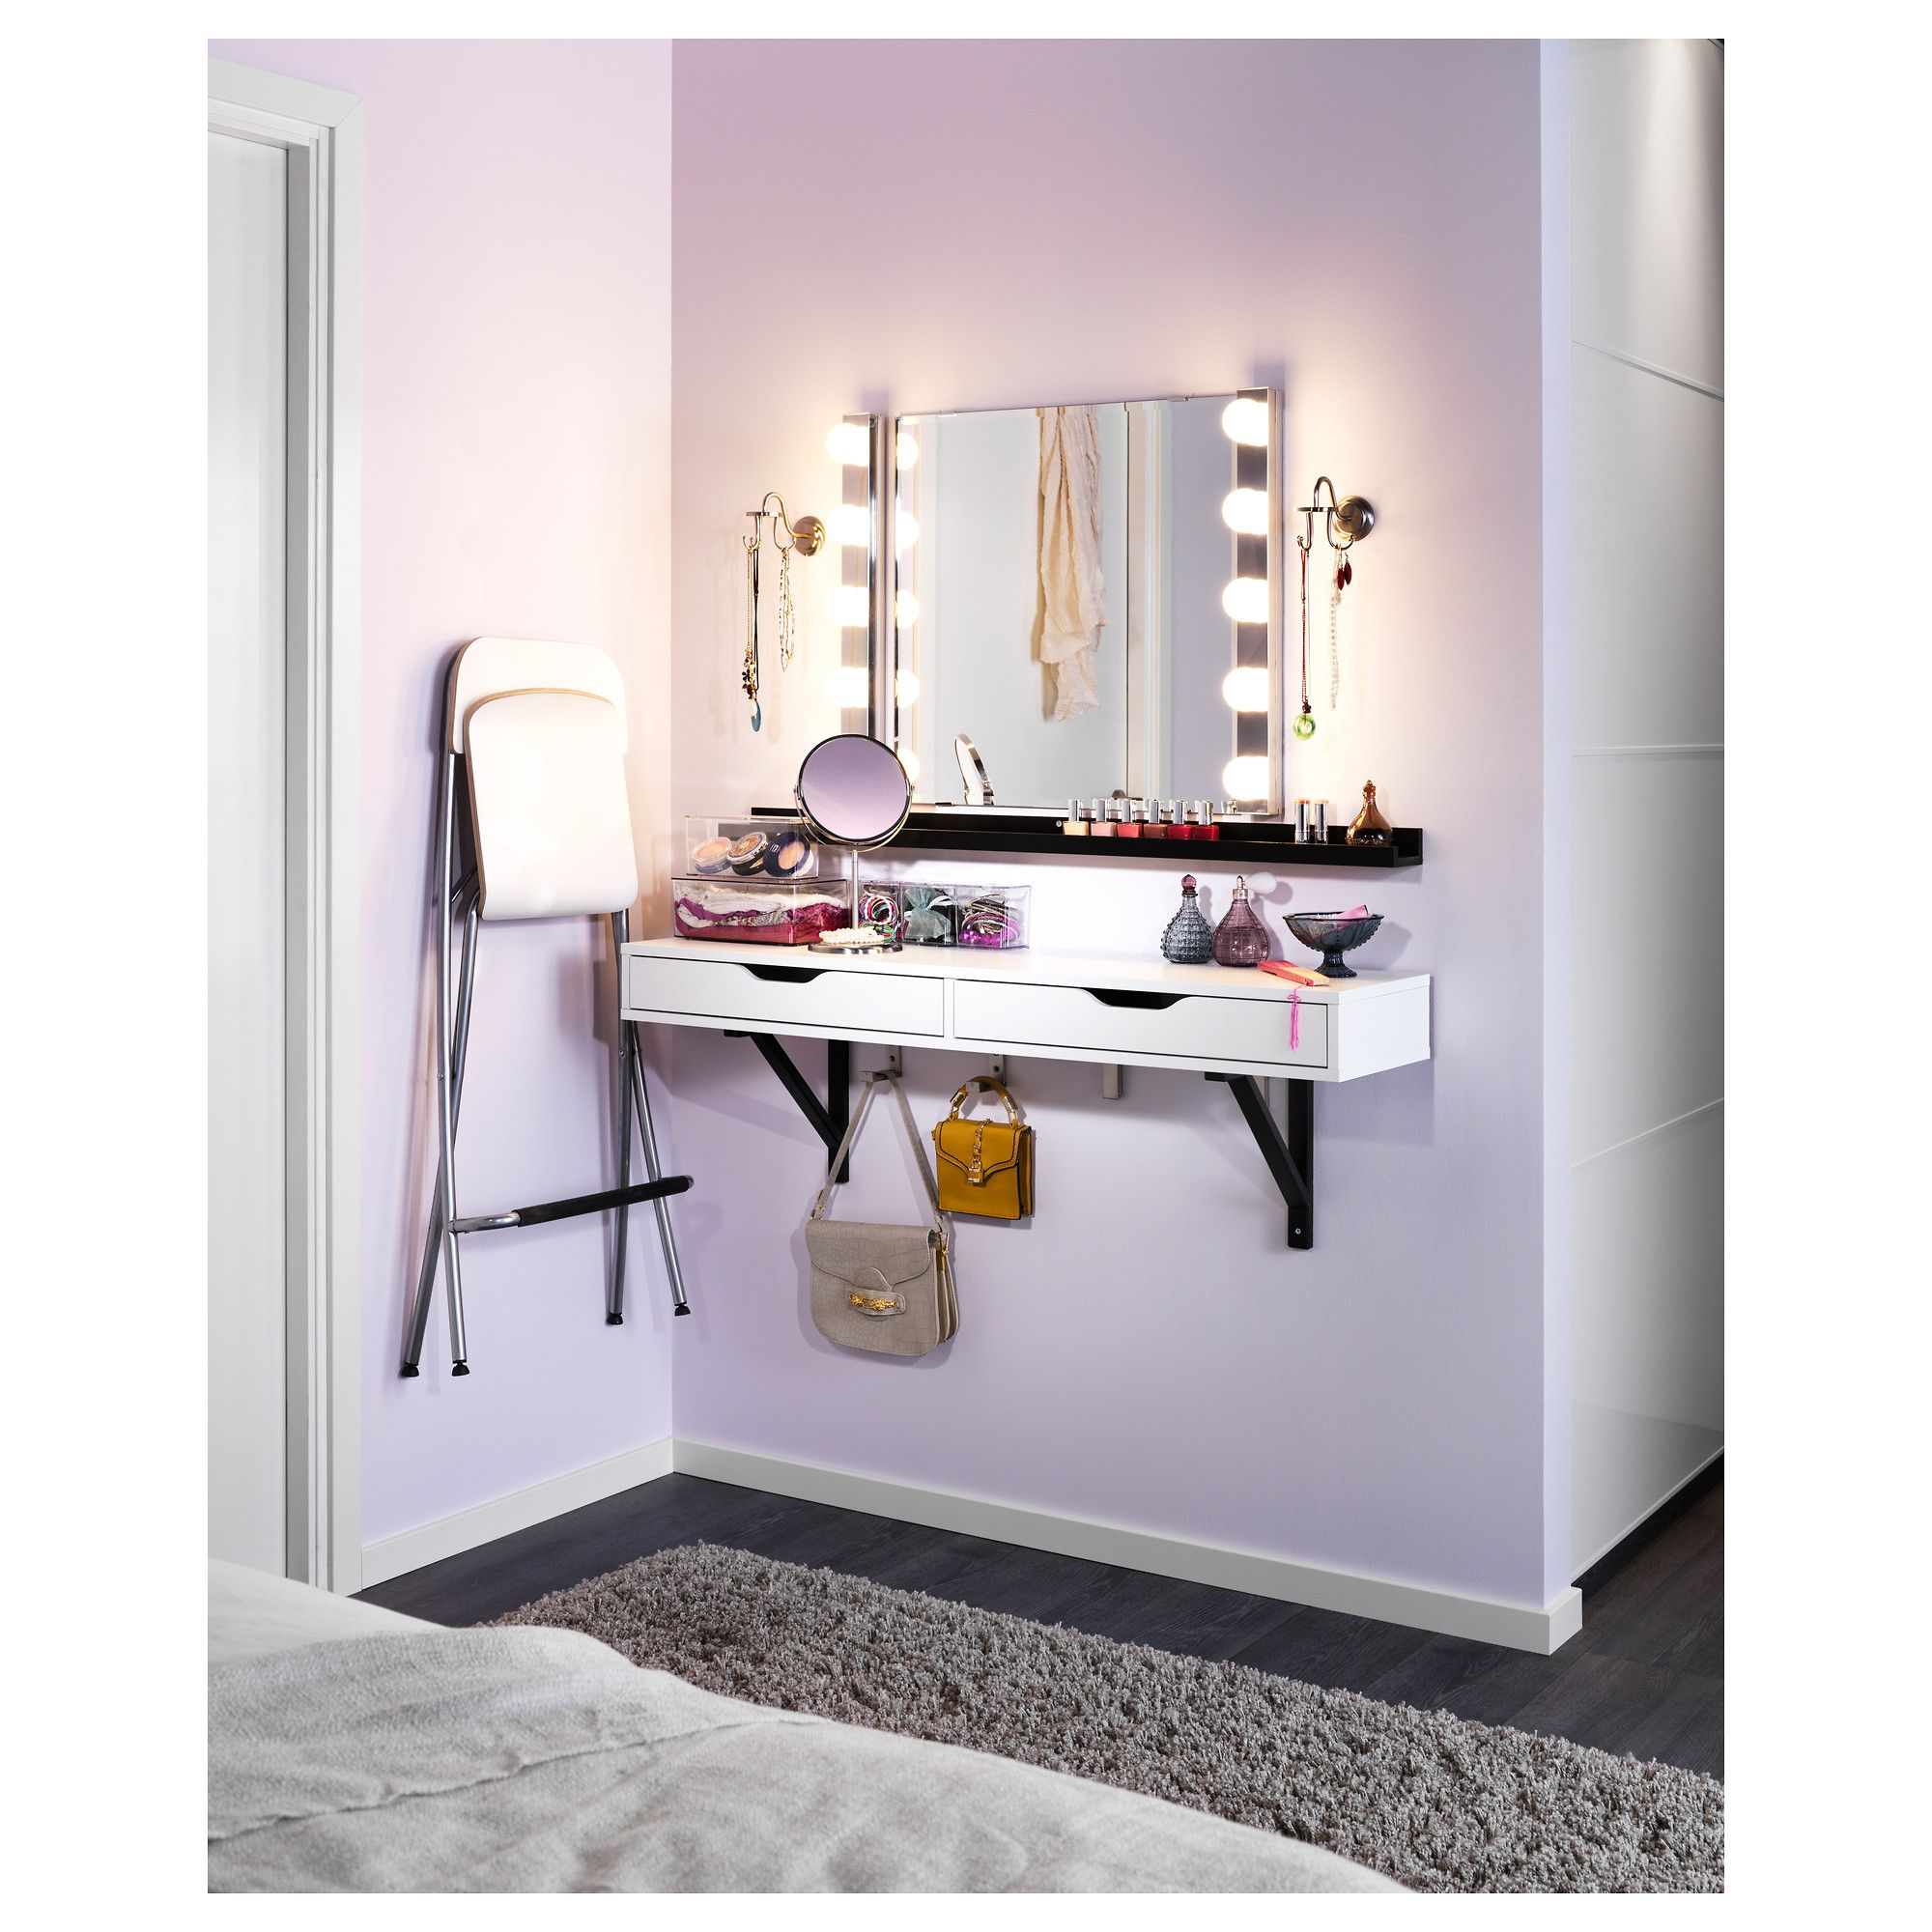 Dressing table mirrors ikea - Steel